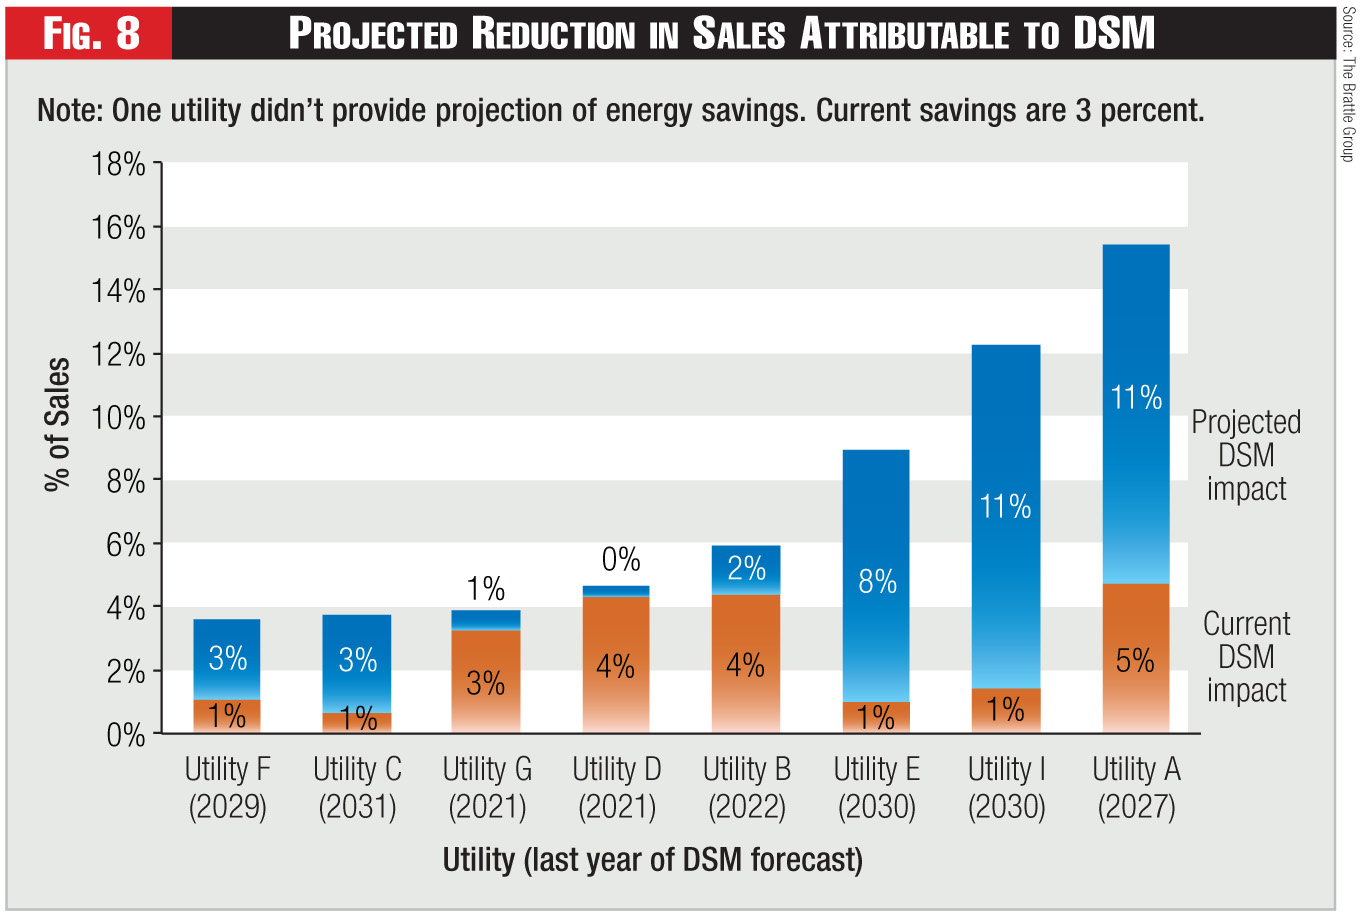 Figure 8 - Projected Reduction in Sales Attributable to DSM